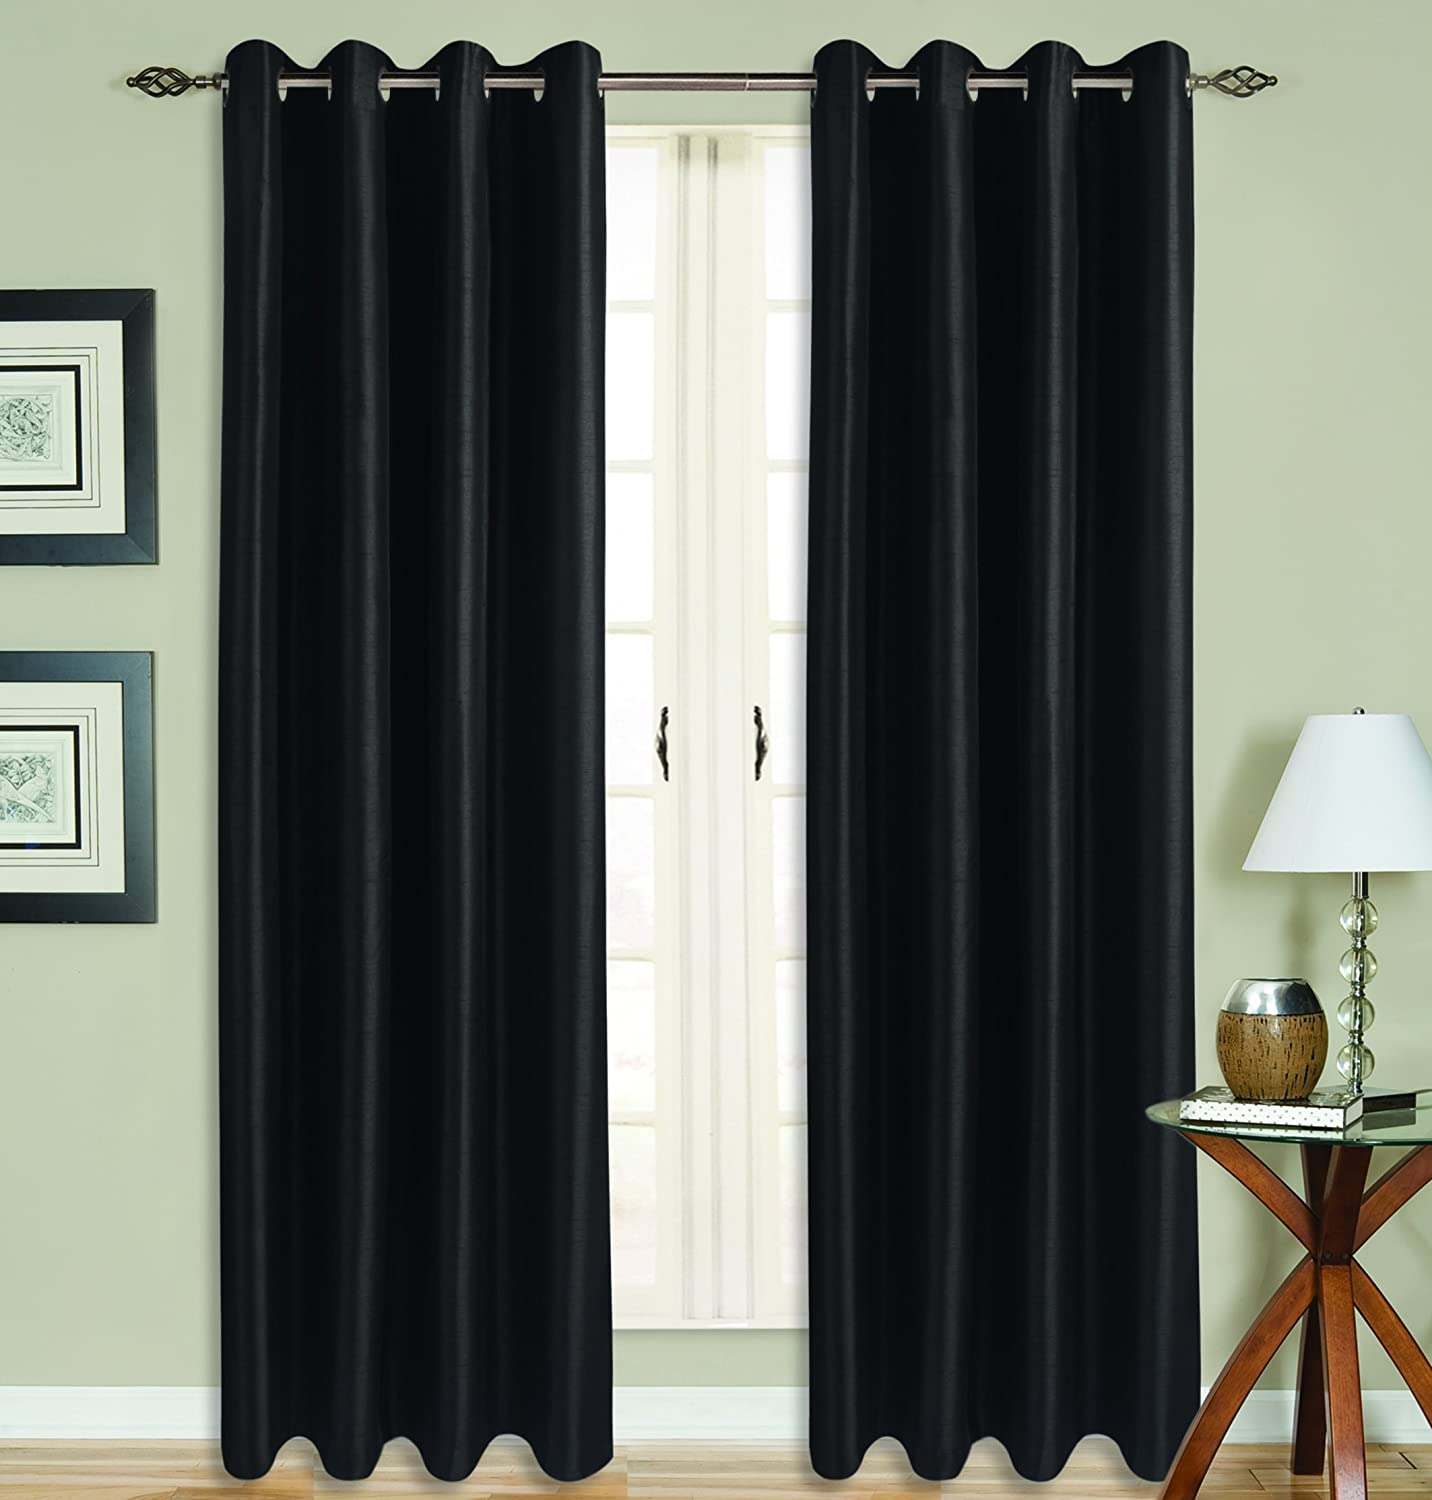 All American Collection New 2 Panel Curtain Set Solid Faux Silk Blackout with 8 Grommets Black